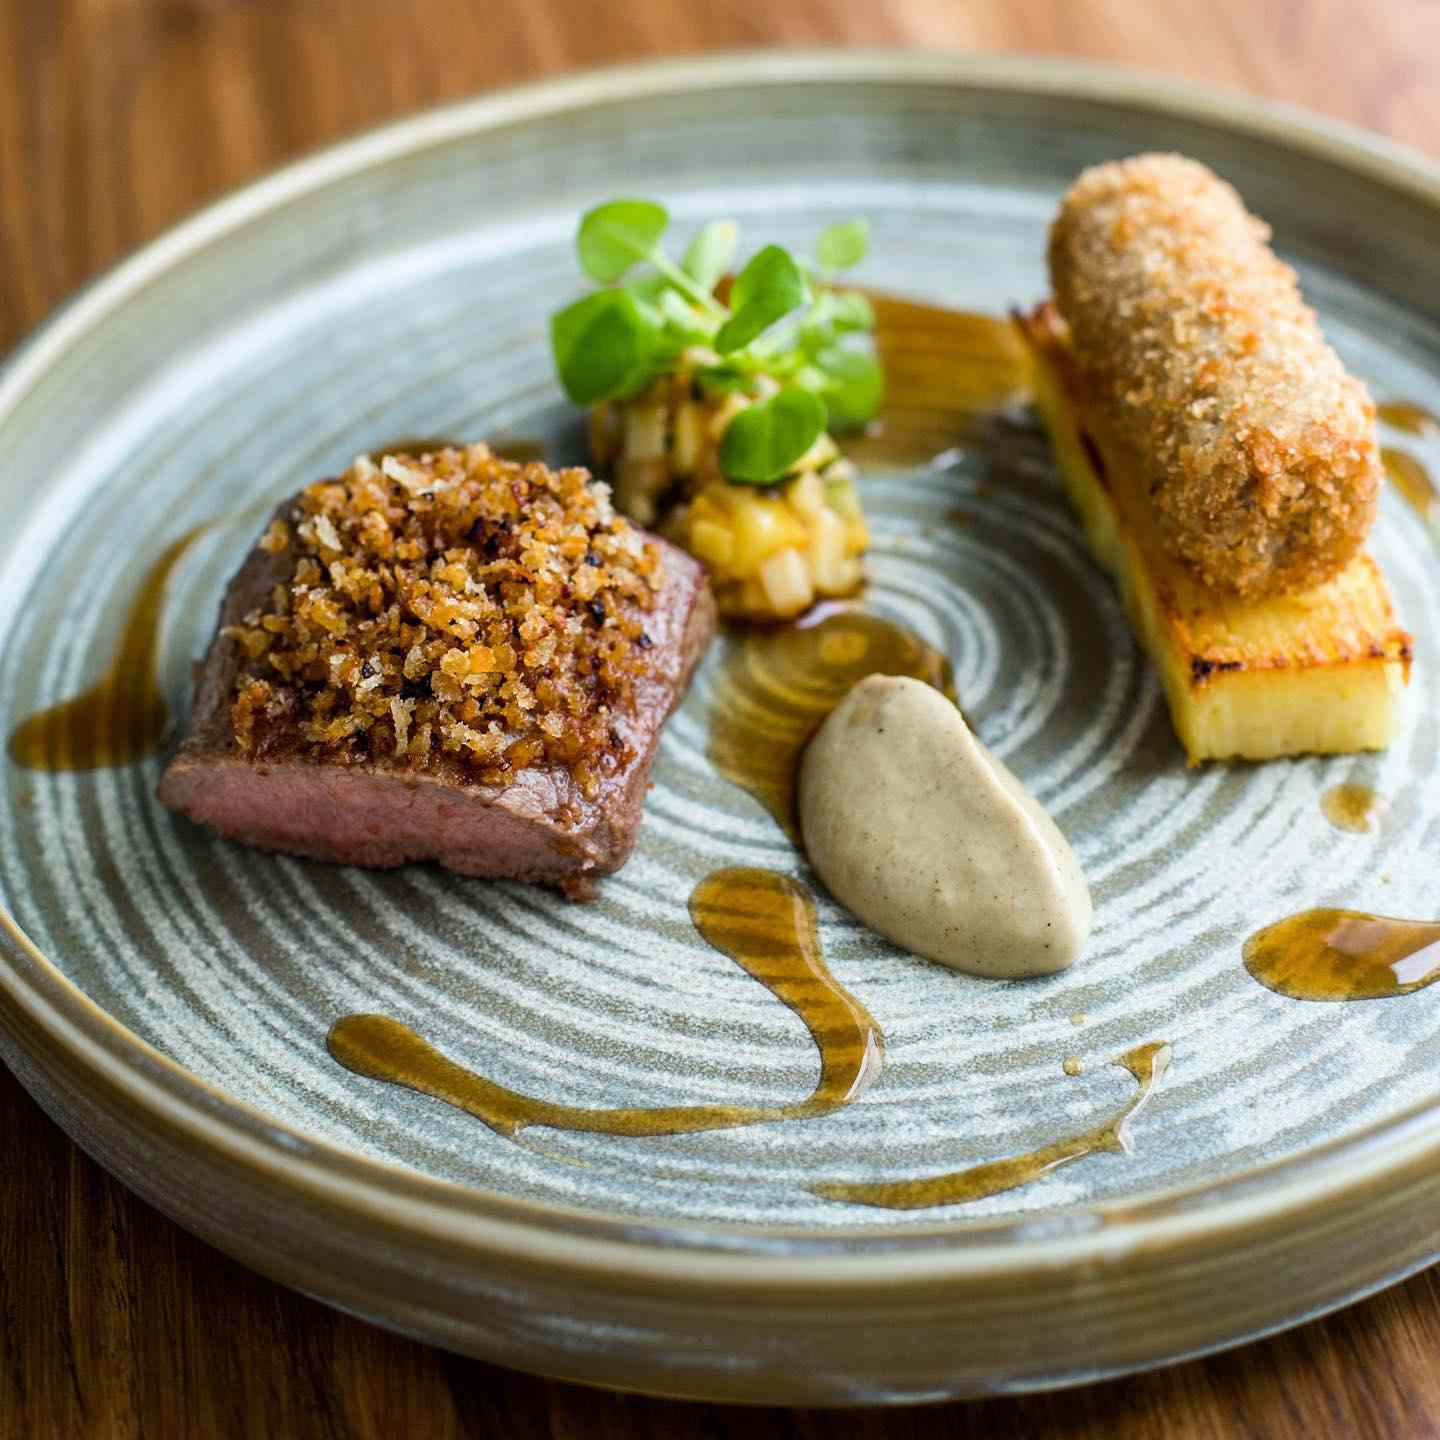 Plate of lamb loin and crispy lamb shoulder served with vegetables and sauces with artful plating